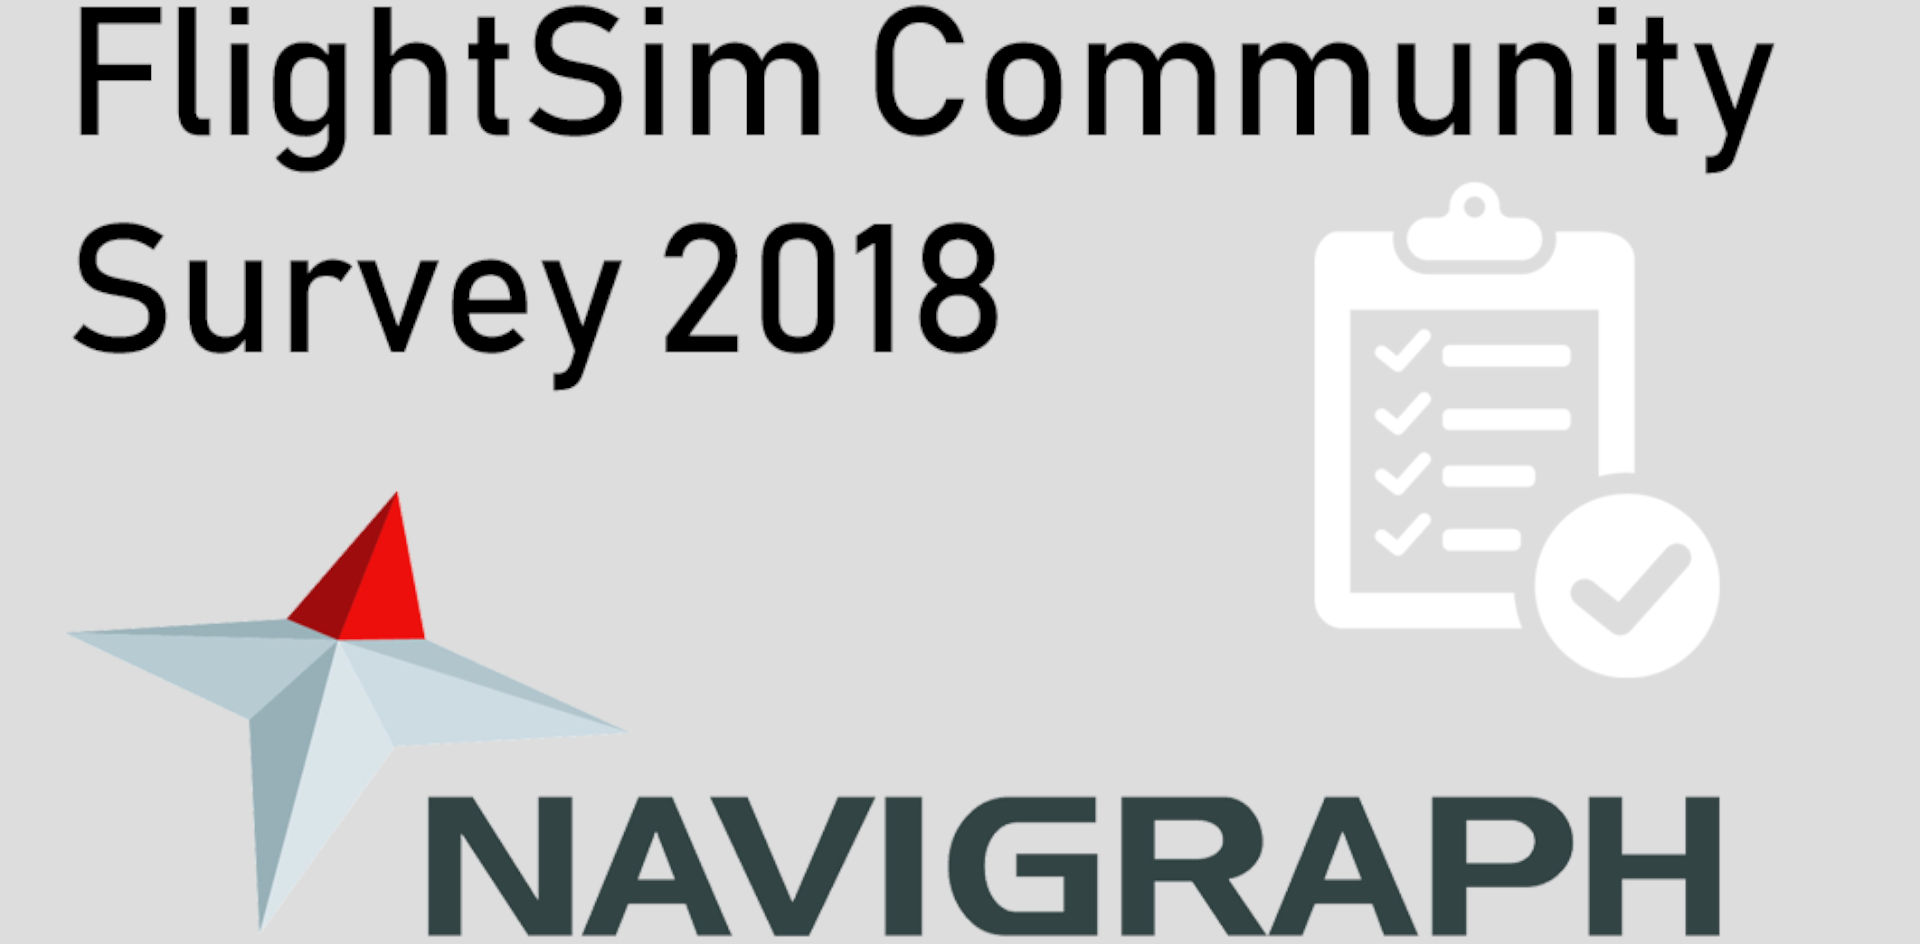 FlightSim Community Survey 2018 Navigraph